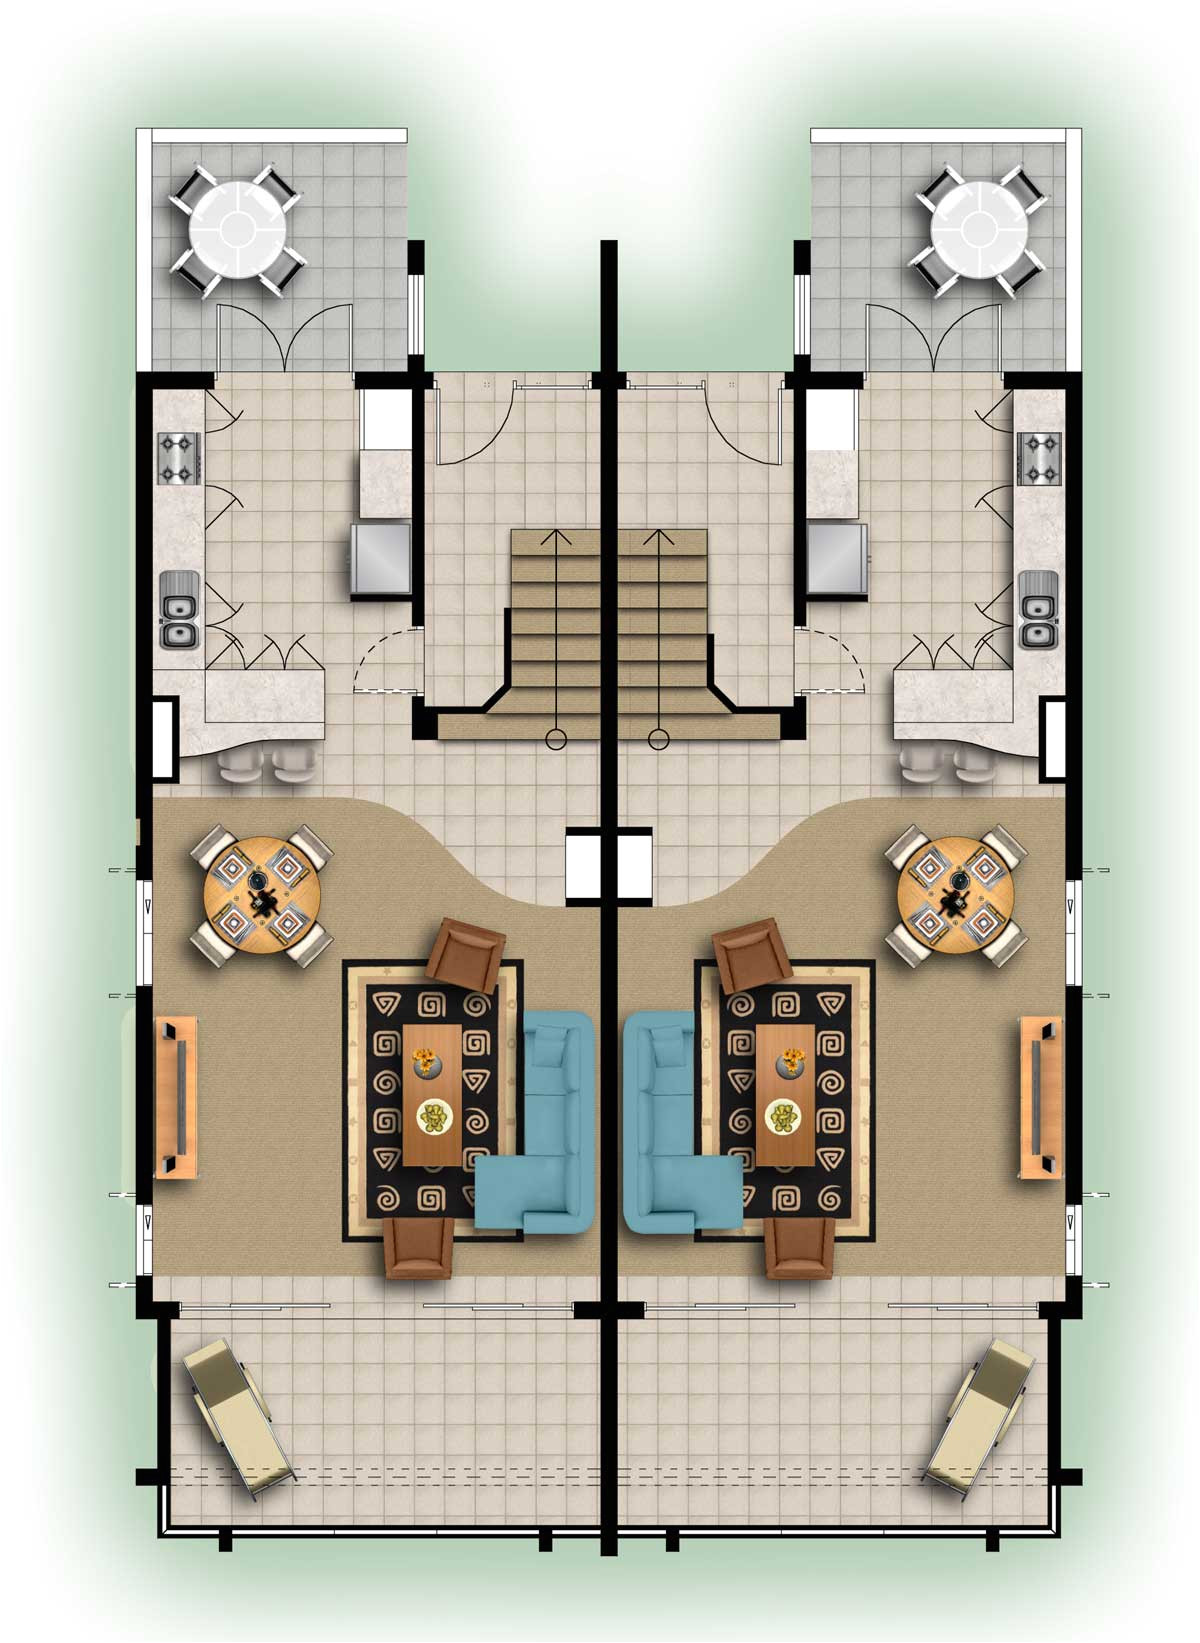 Design Homes Floor Plans Floor Plans Designs for Homes Homesfeed